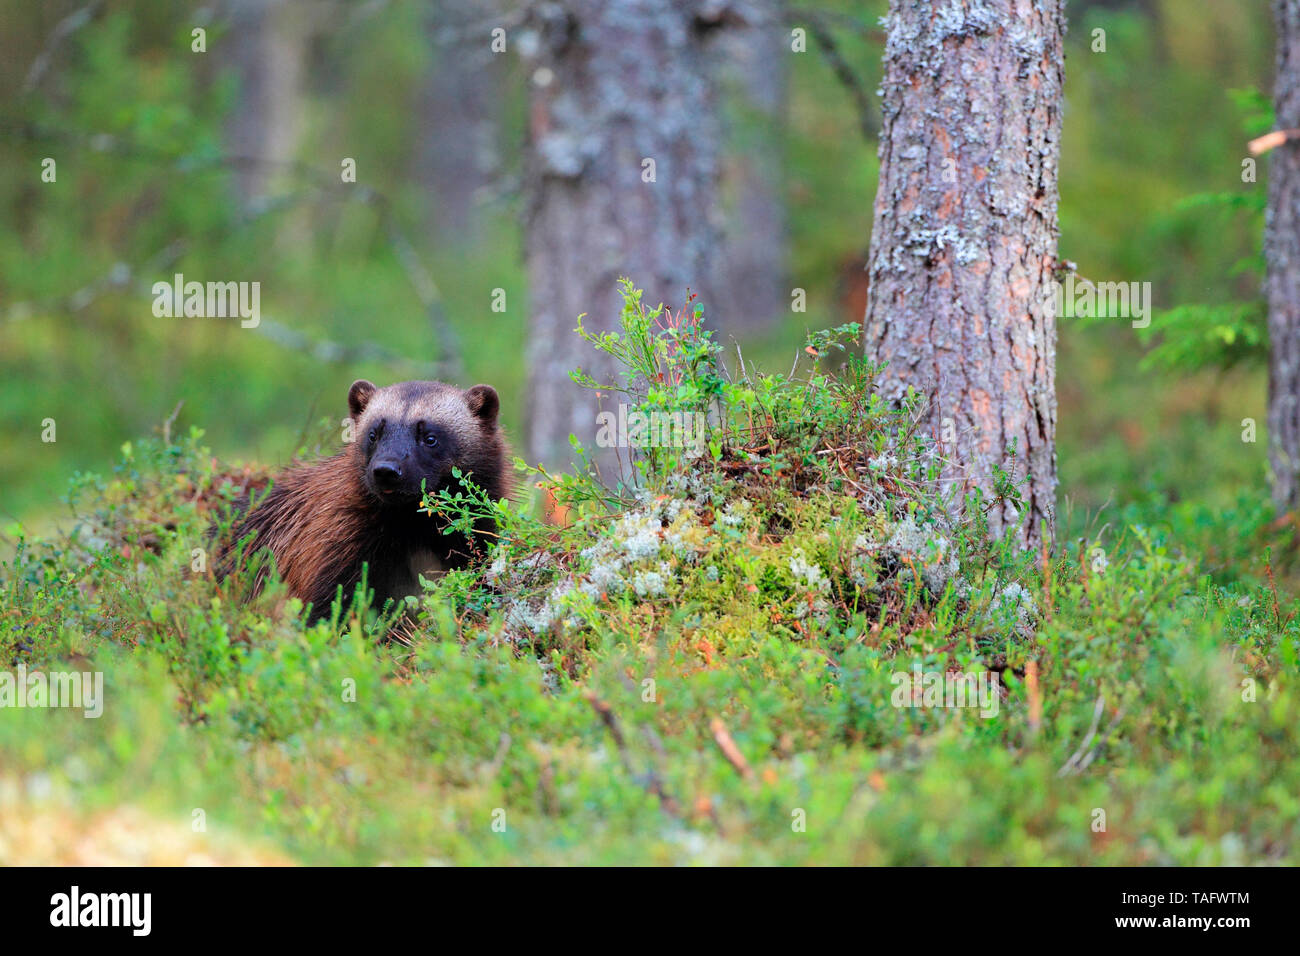 Wolverine (Gulo gulo) in the boreal forest - Stock Image